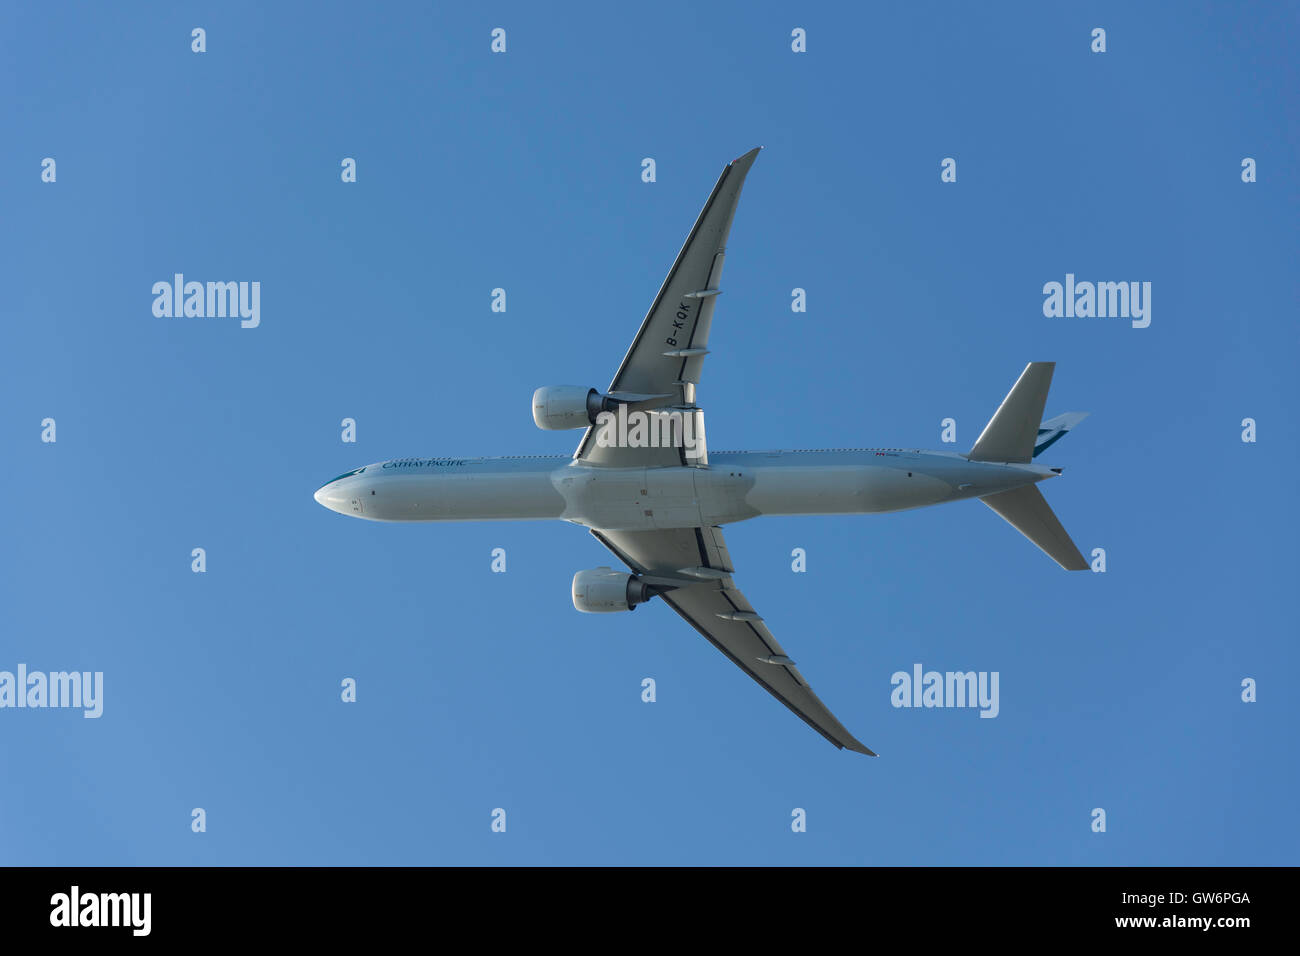 Cathay Pacific Boeing 777-367(ER) aircraft taking off from Heathrow Airport, Greater London, England, United Kingdom - Stock Image